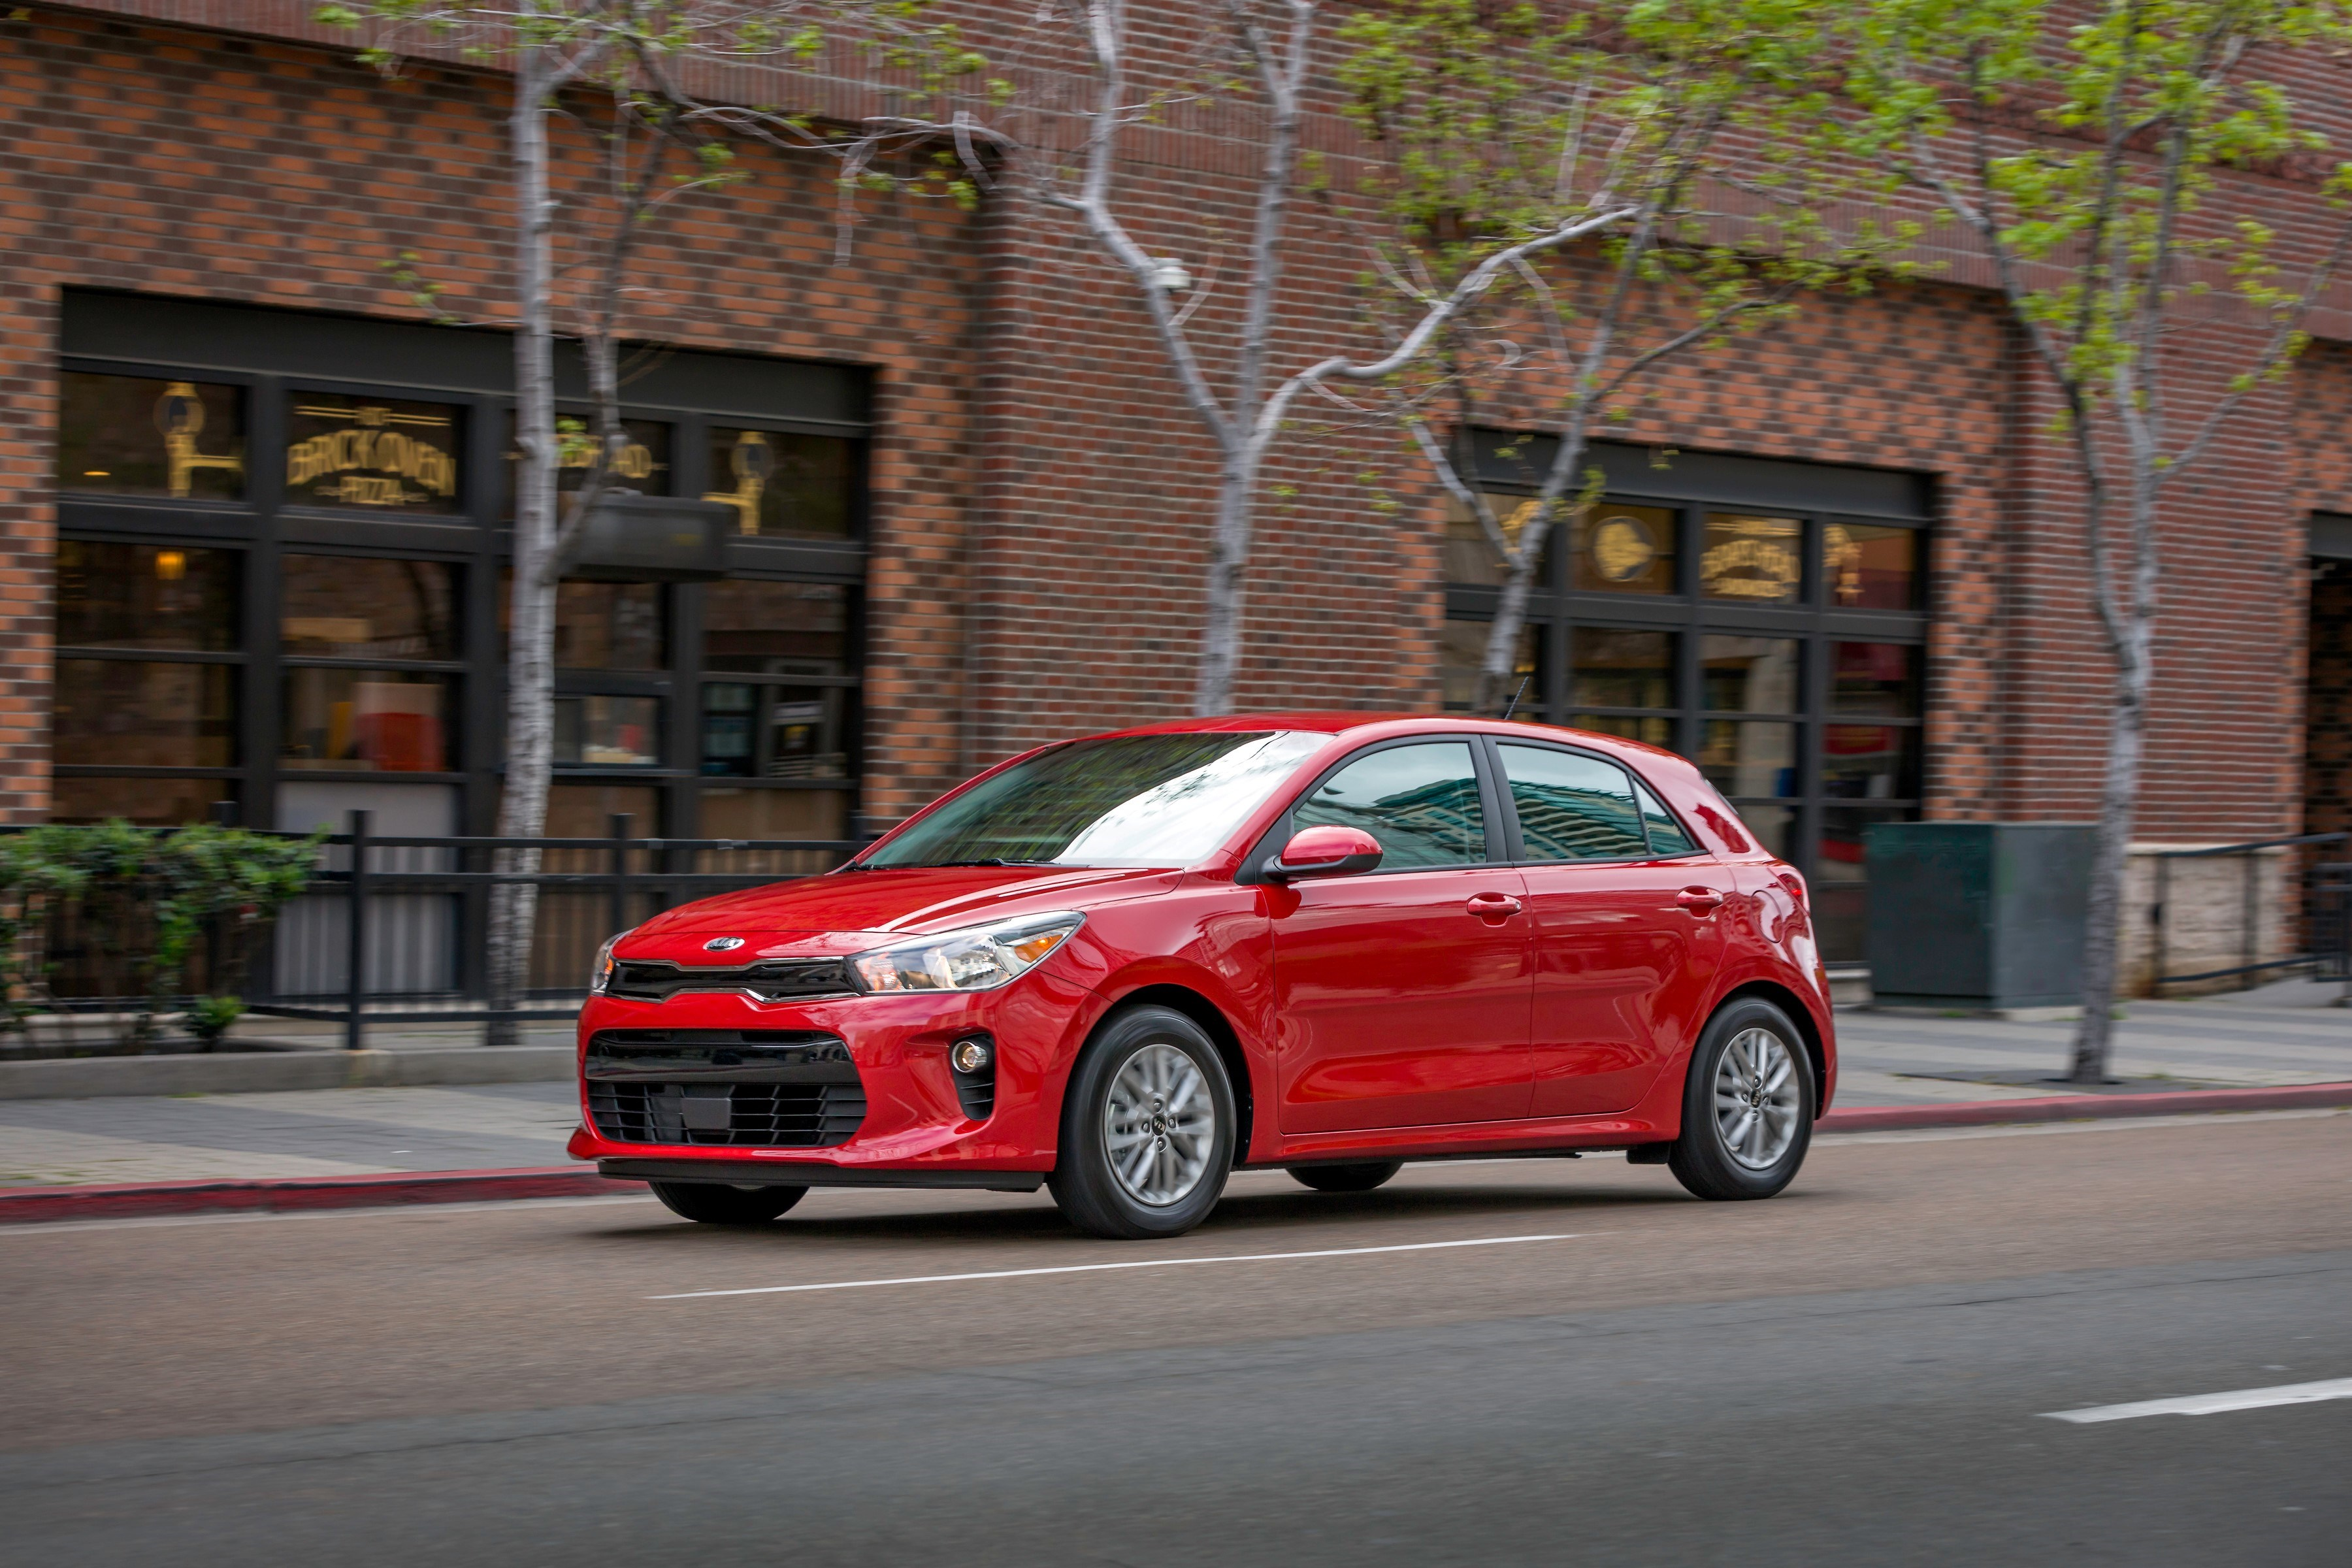 2019 Kia Rio Loses Manual Transmission In the U.S ...